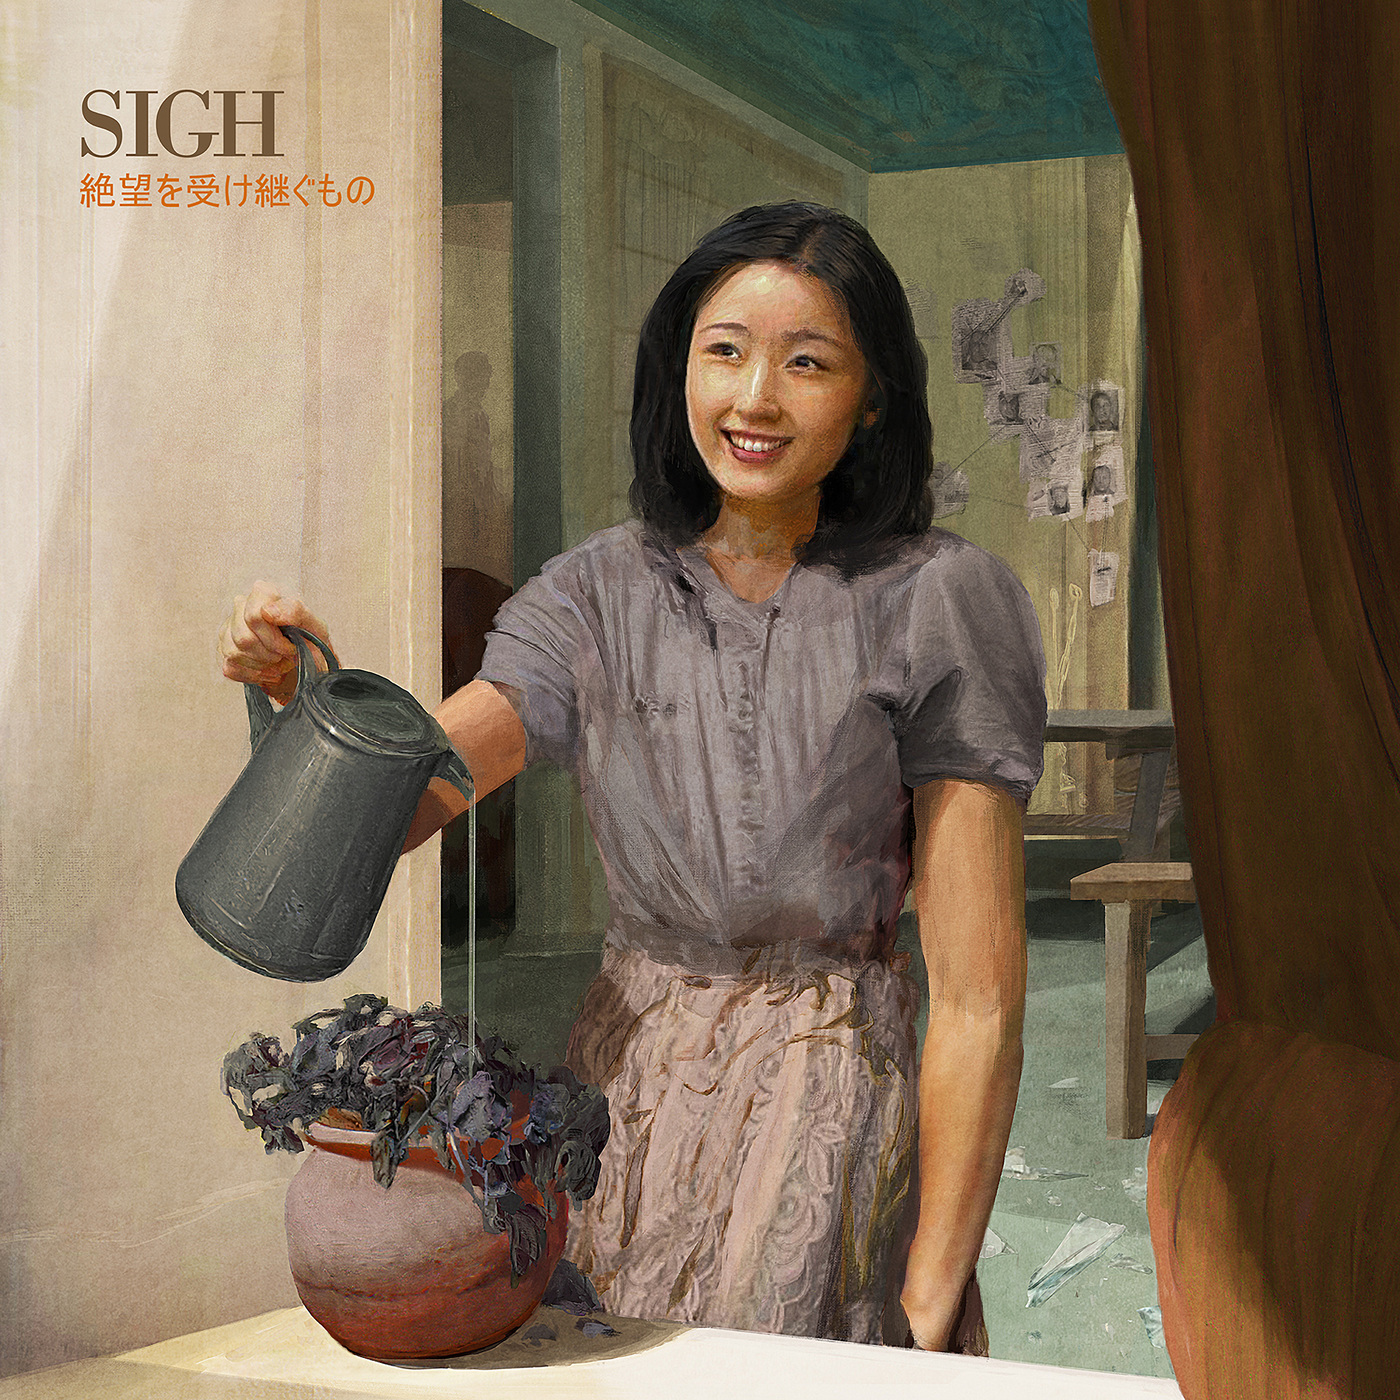 Sigh - Heir To Despair - 2018